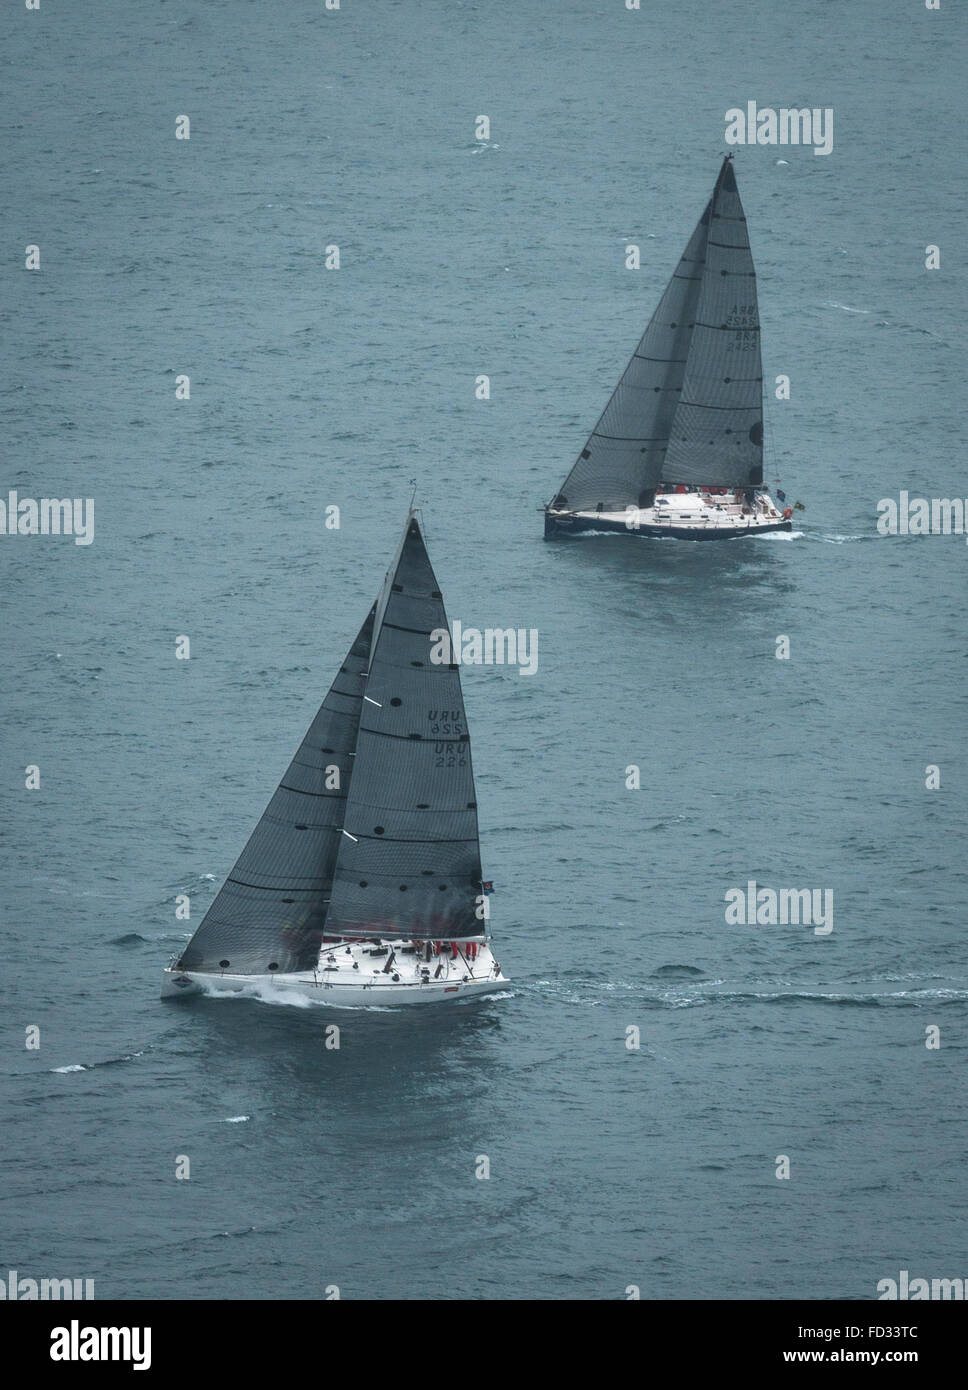 Sail boats race at the Ilhabela Sailing Week of 2015 - Stock Image